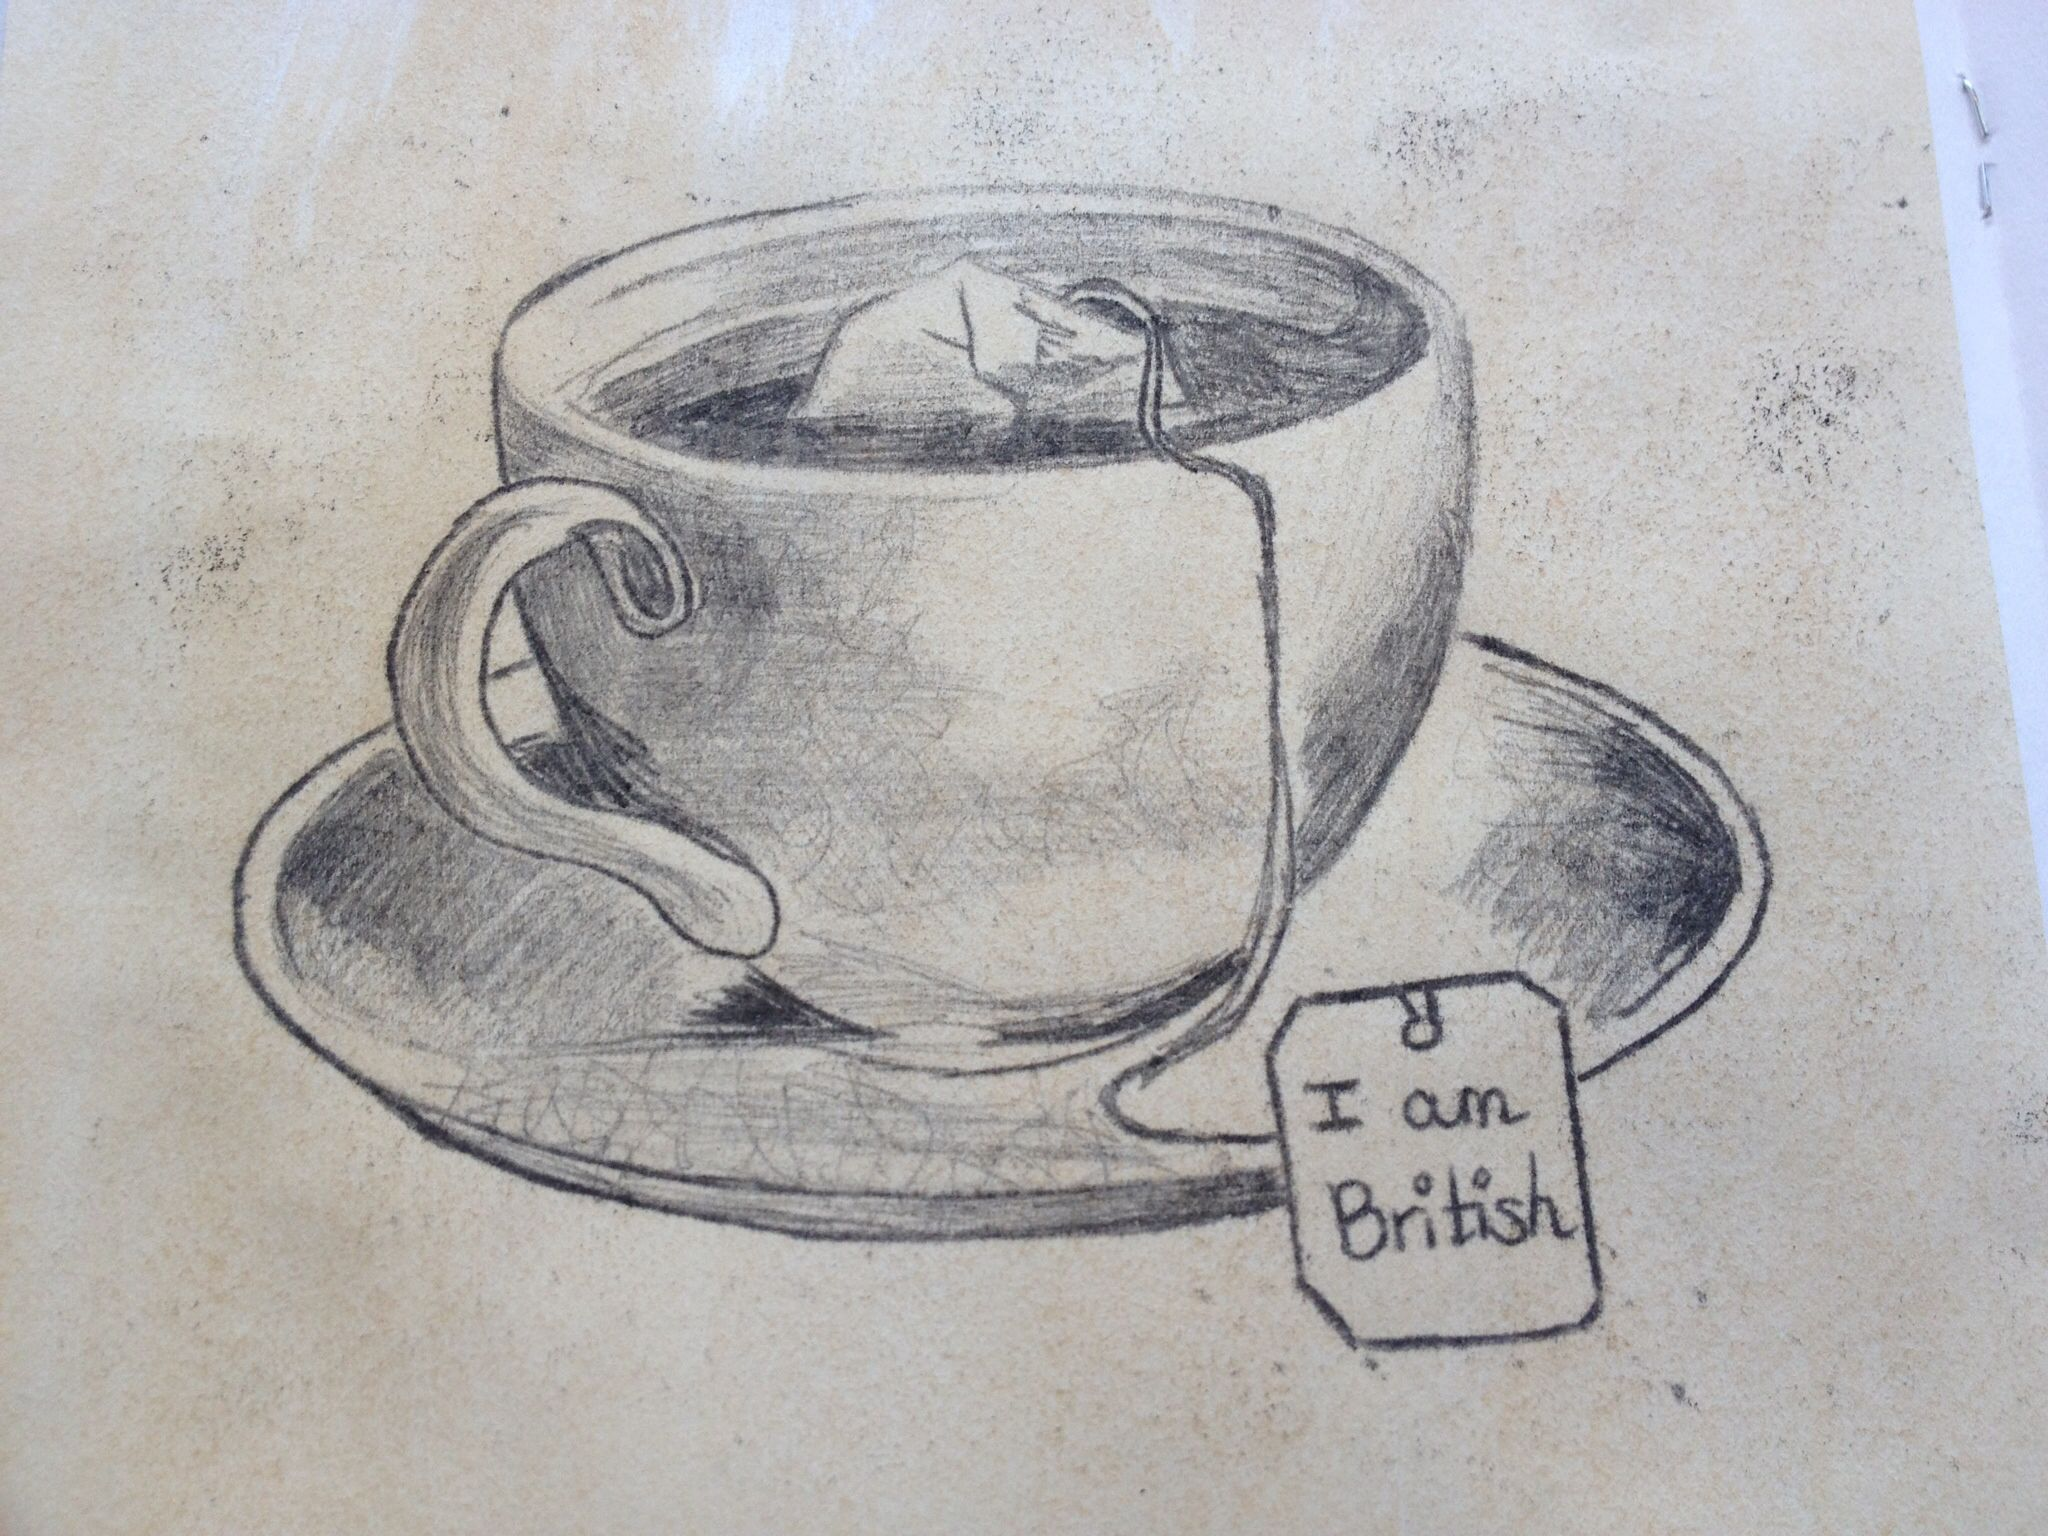 pencil drawing tea cup sketch teacup sketches drawings beginner pastel coffee oil sketching stained beginners tracing using pastels painting tattoo